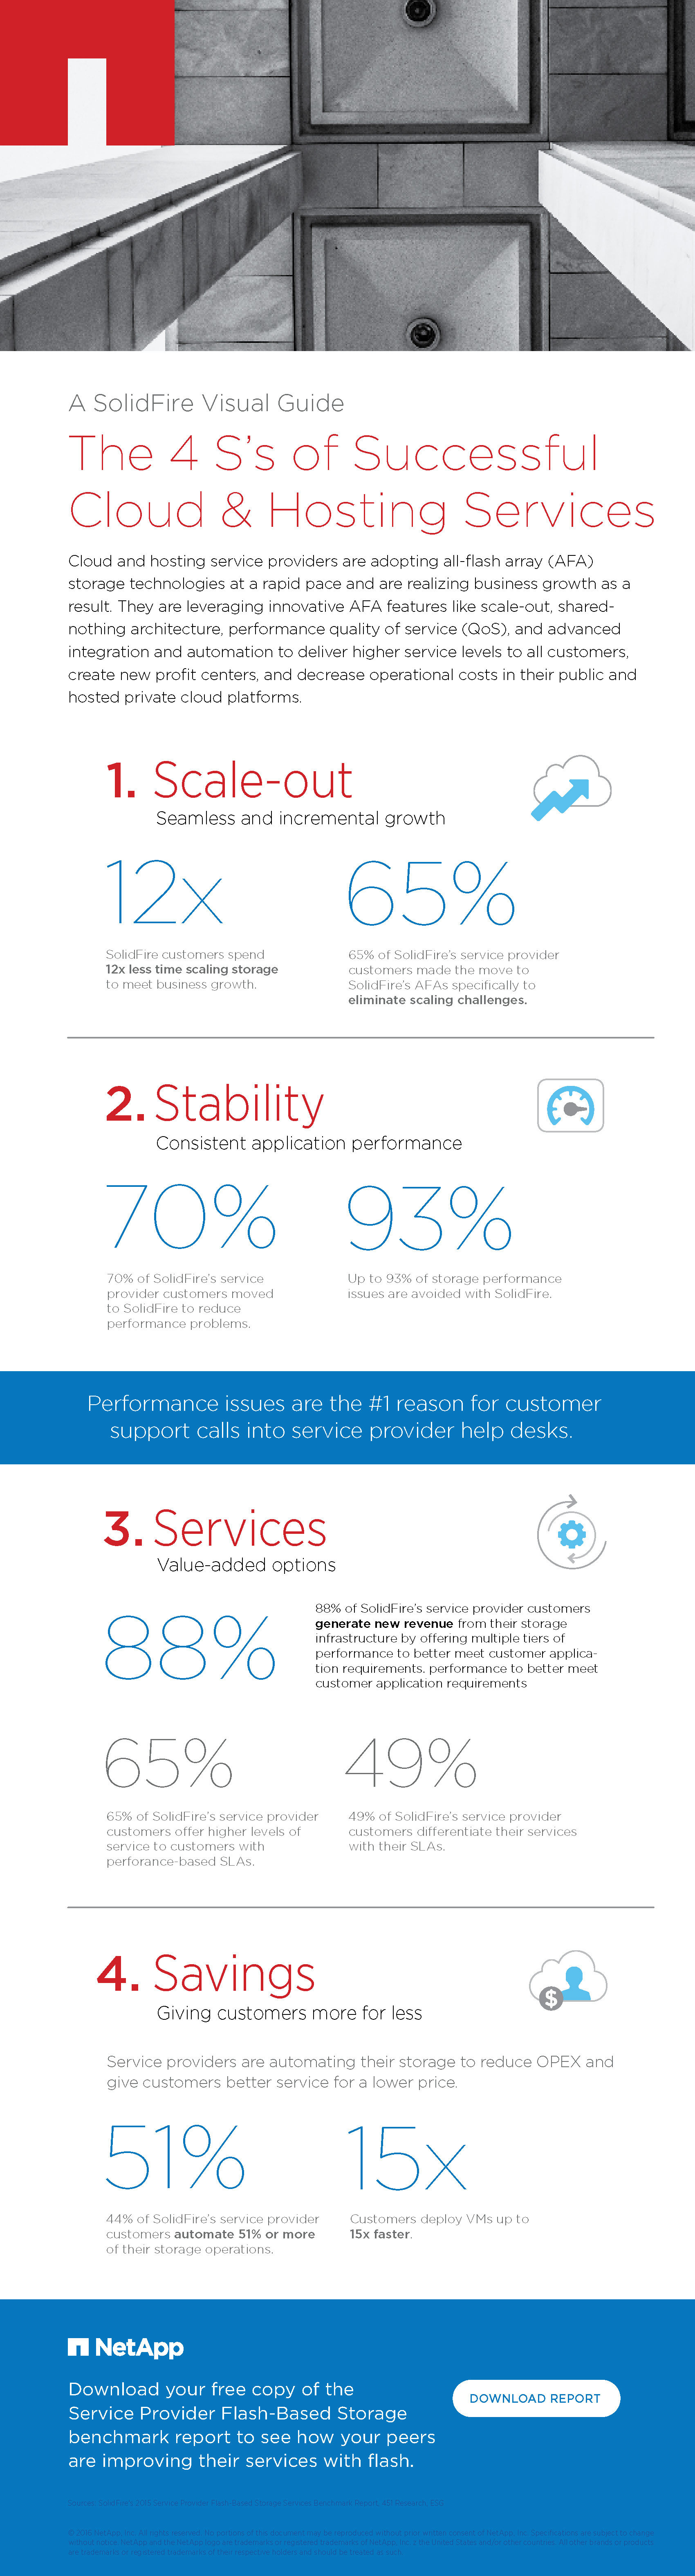 r4_NA_SolidFire-Infographic-Benchmark-Report_060716.jpg